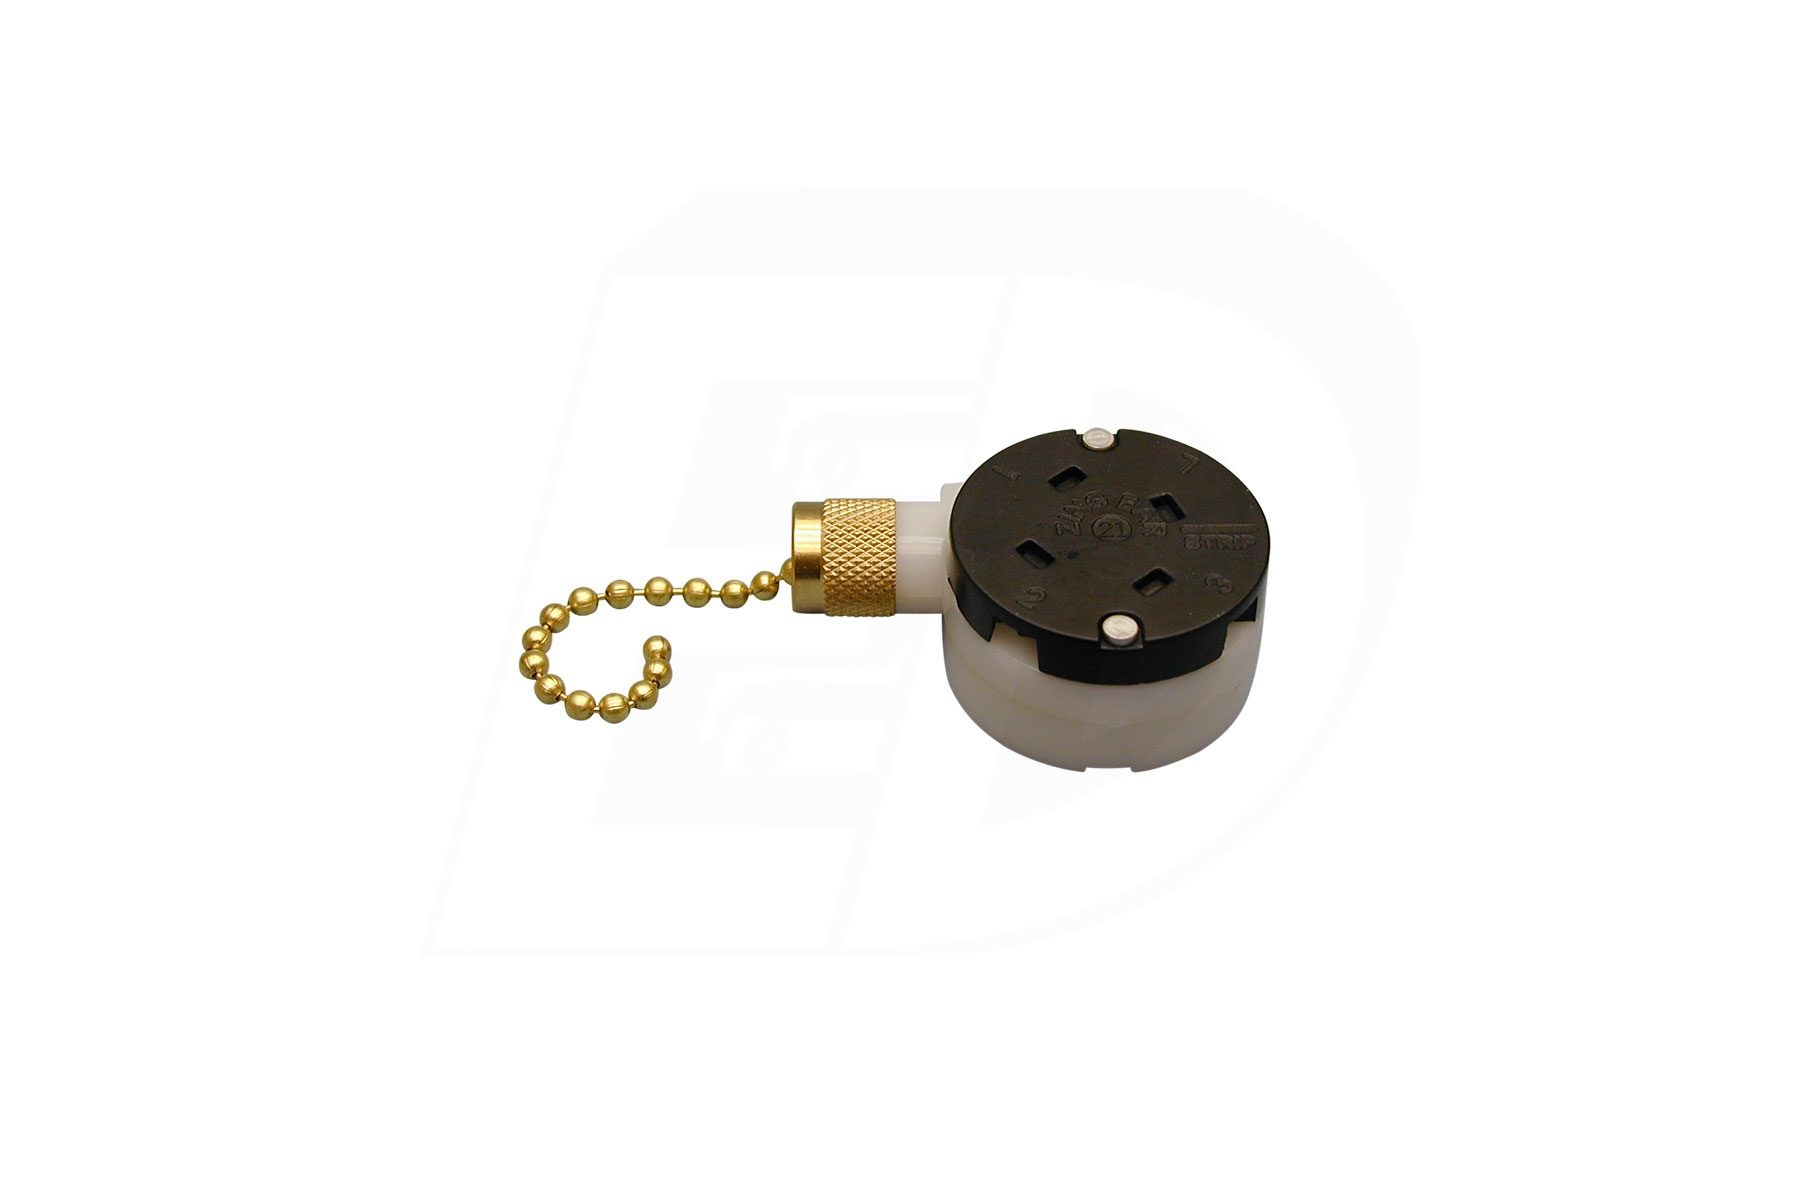 SPST Pull Chain Lamp Switch